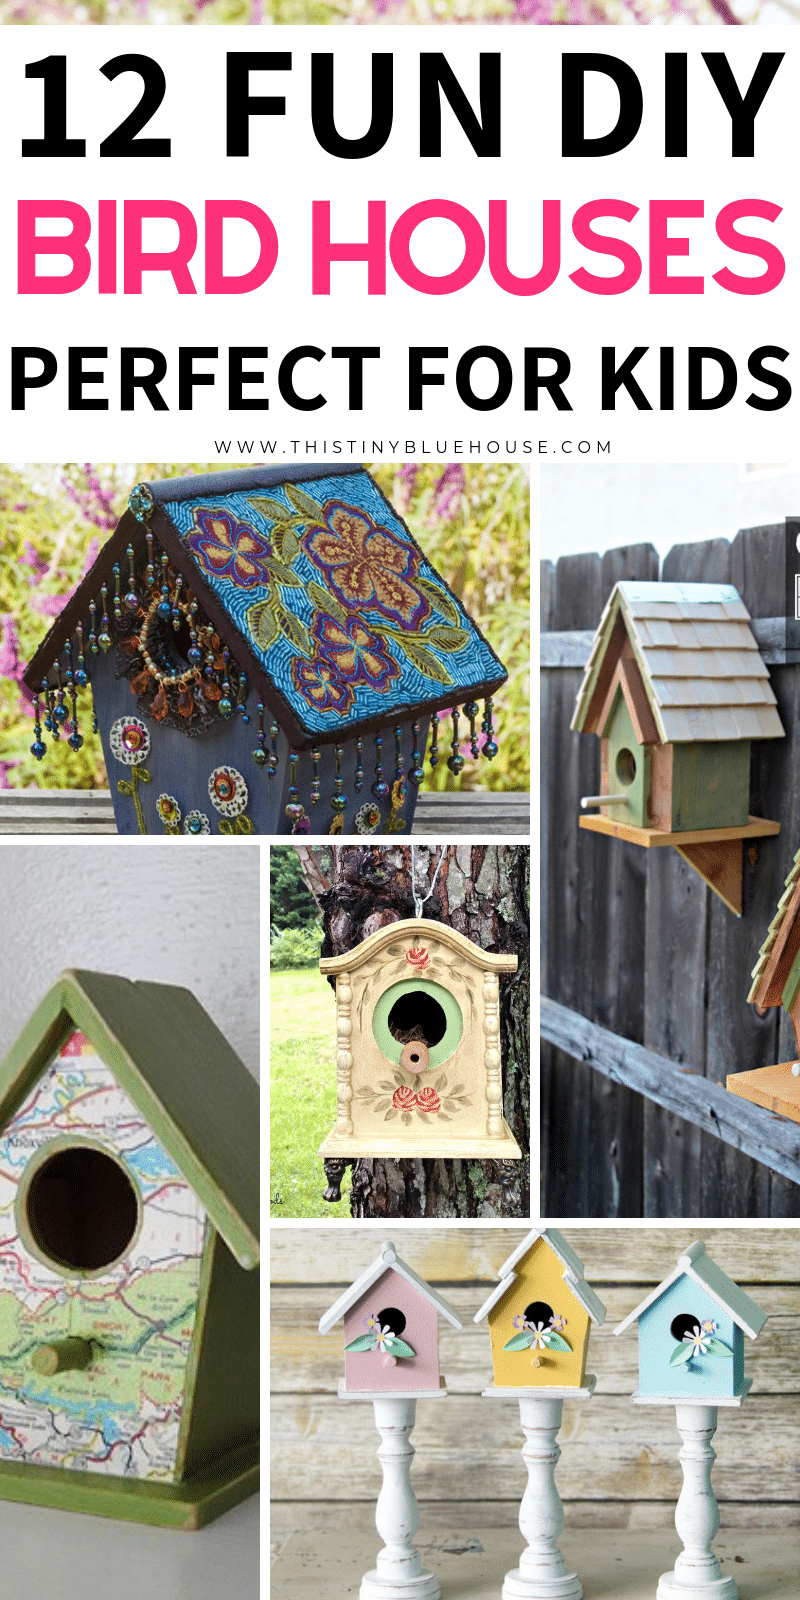 Add one of these DIY Birdhouse Projects to your summer bucket list! Easy to make and perfect for any outdoor space these birdhouses are perfect for summer. #DIYBirdHouses #DIYBirdHousesForKids #DIYBirdHousesEasy #DIYBirdHousesUpcycle #DIYBirdHousesWooden #DIYBirdHousesIDeas